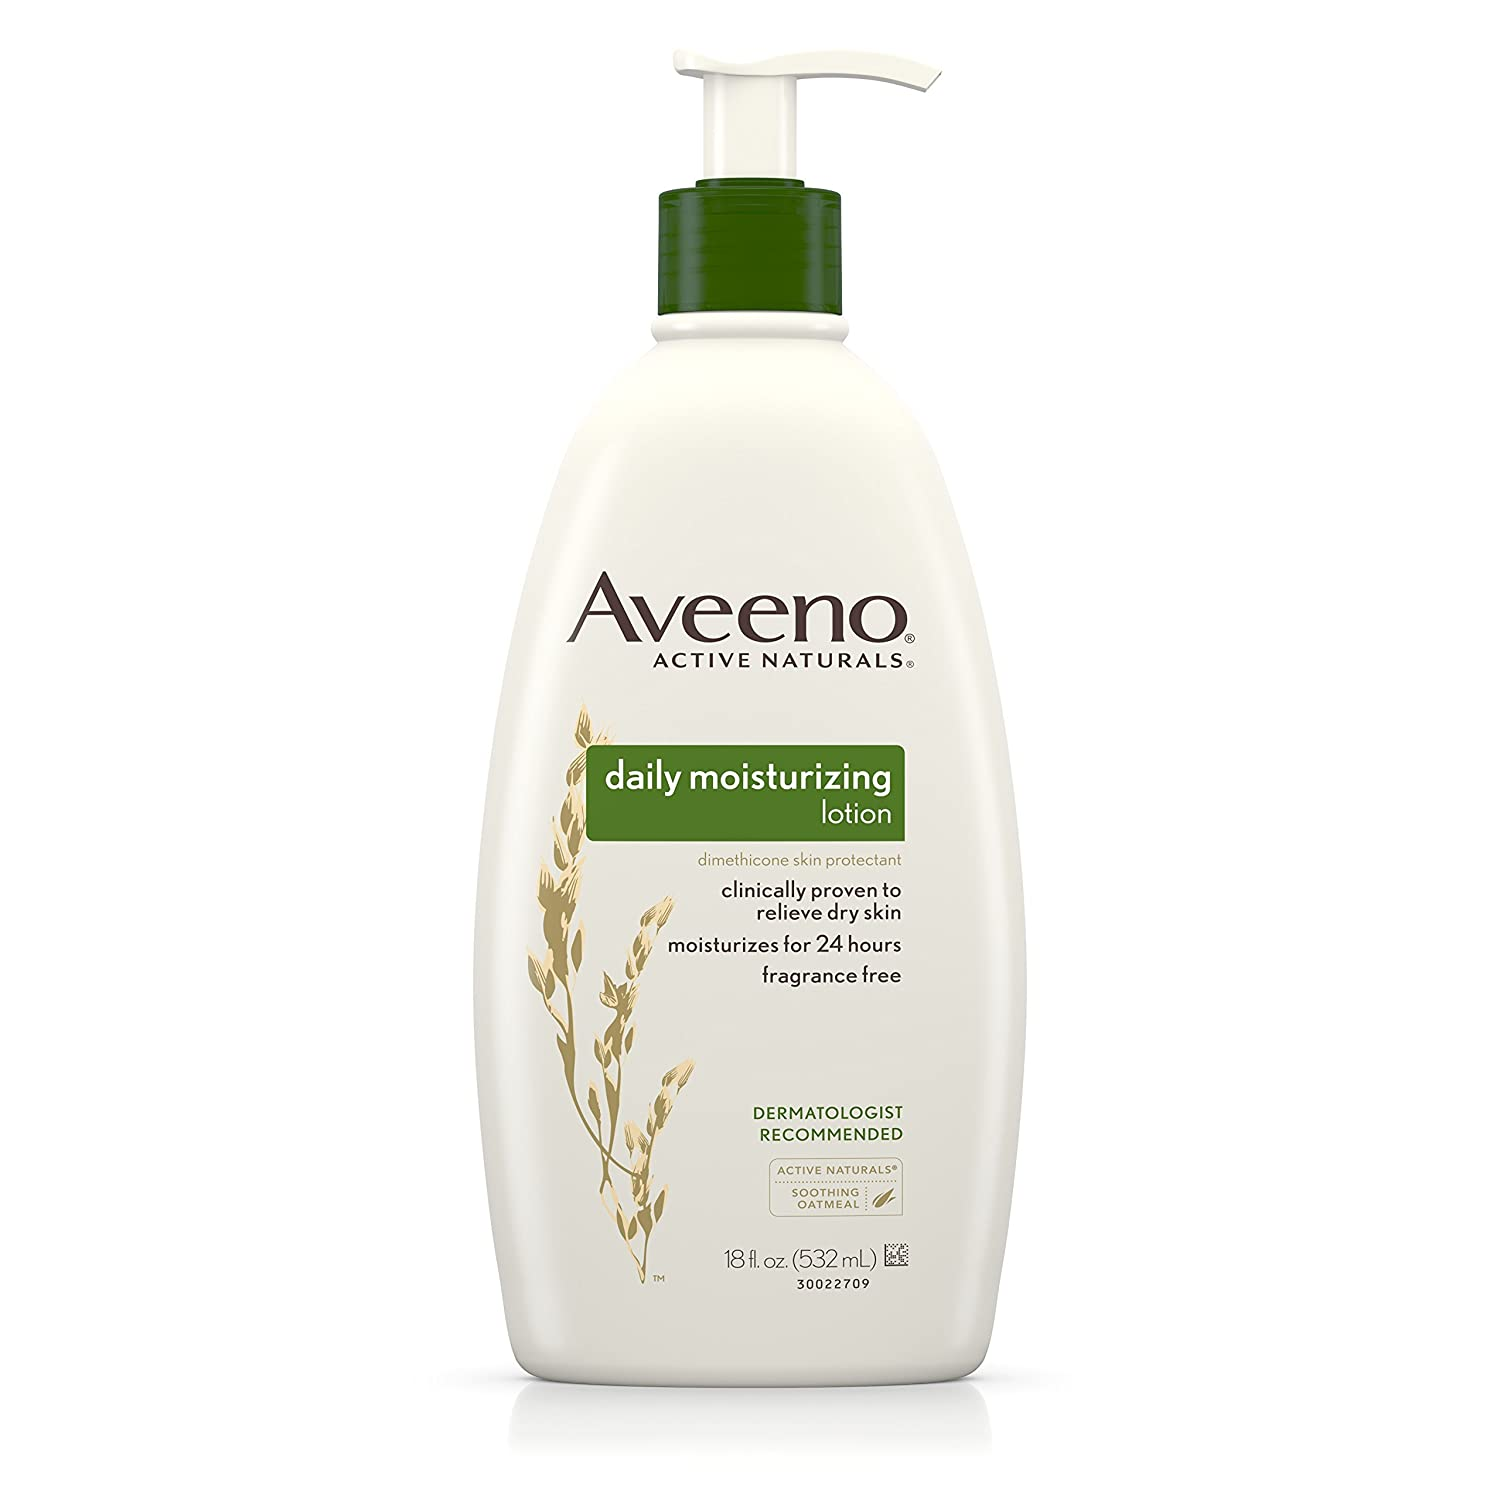 Aveeno Daily Moisturizing Body Lotion with Soothing Oat and Rich Emollients to Nourish Dry Skin, Fragrance-Free, 18 fl. oz